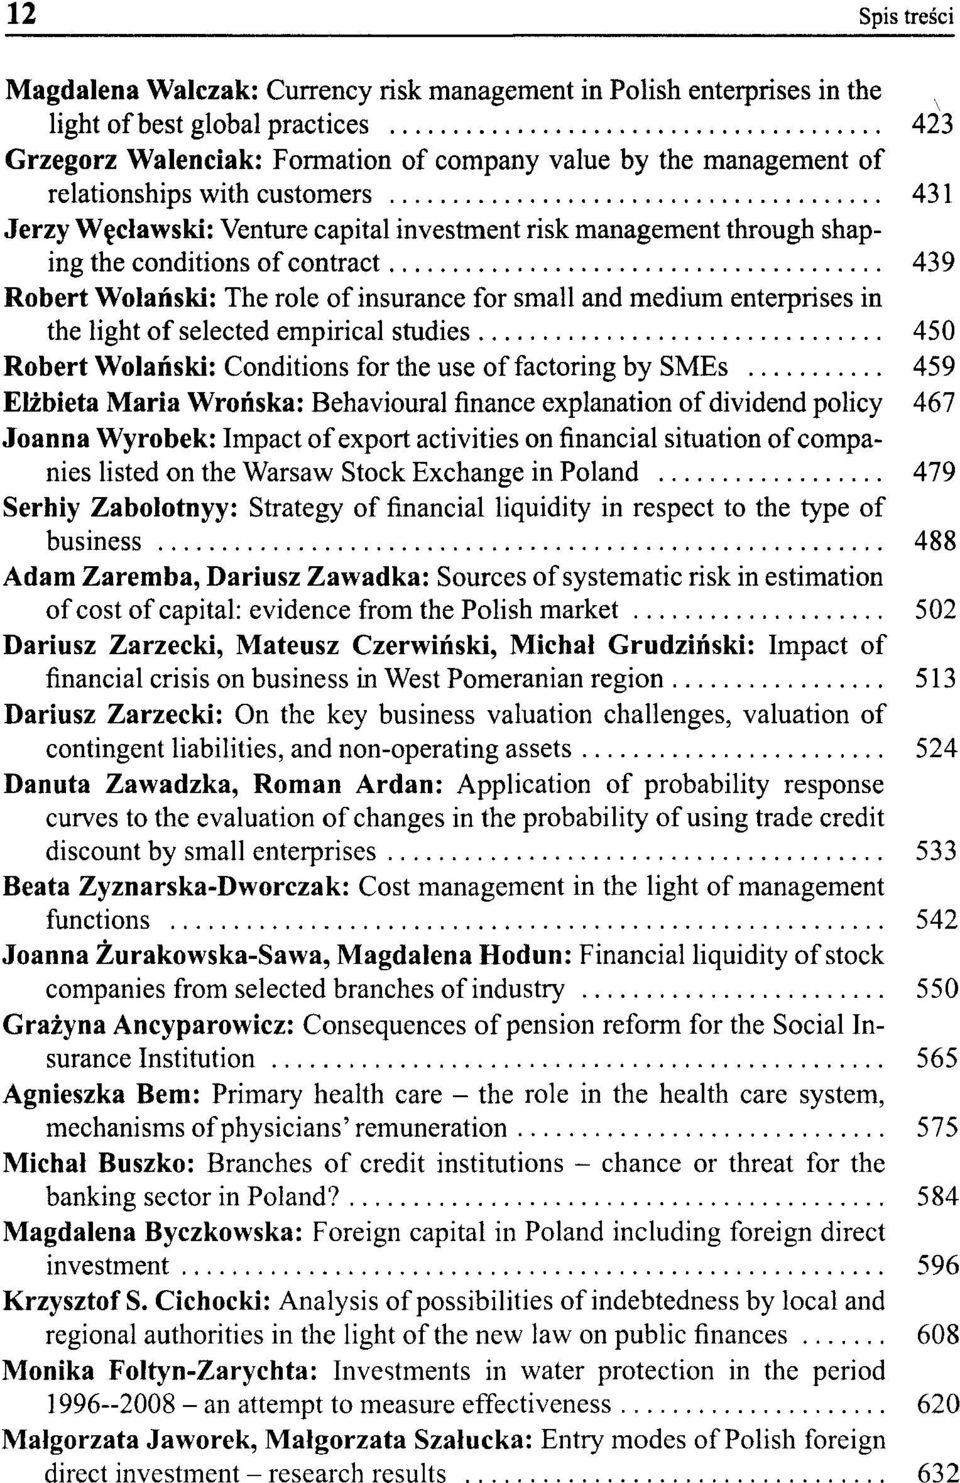 enterprises in the light of selected empirical studies 450 Robert Wolański: Conditions for the use of factoring by SMEs 459 Elżbieta Maria Wrońska: Behavioural finance explanation of dividend policy